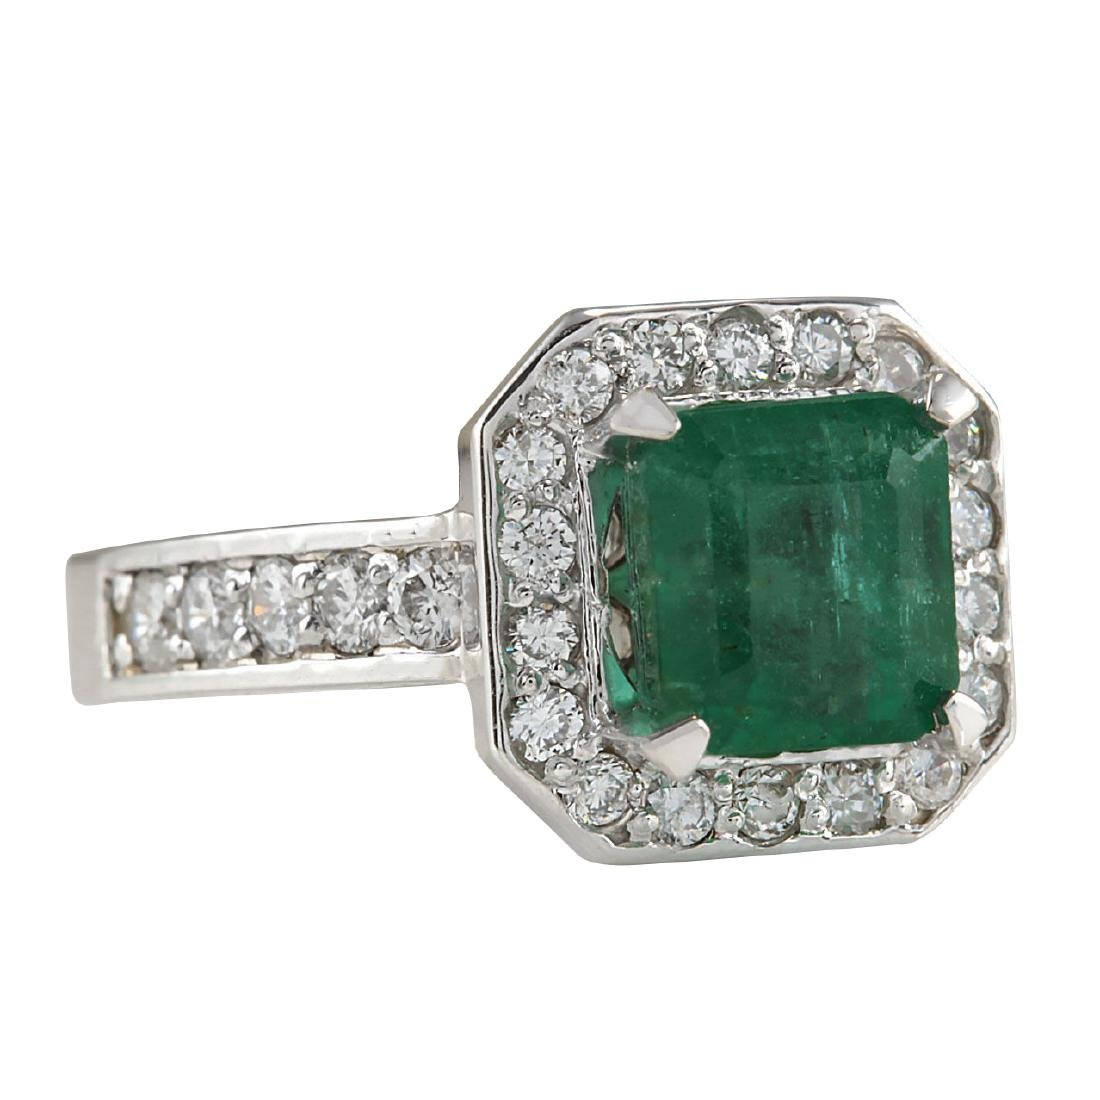 3.32CTW Natural Emerald And Diamond Ring In 18K White - 2